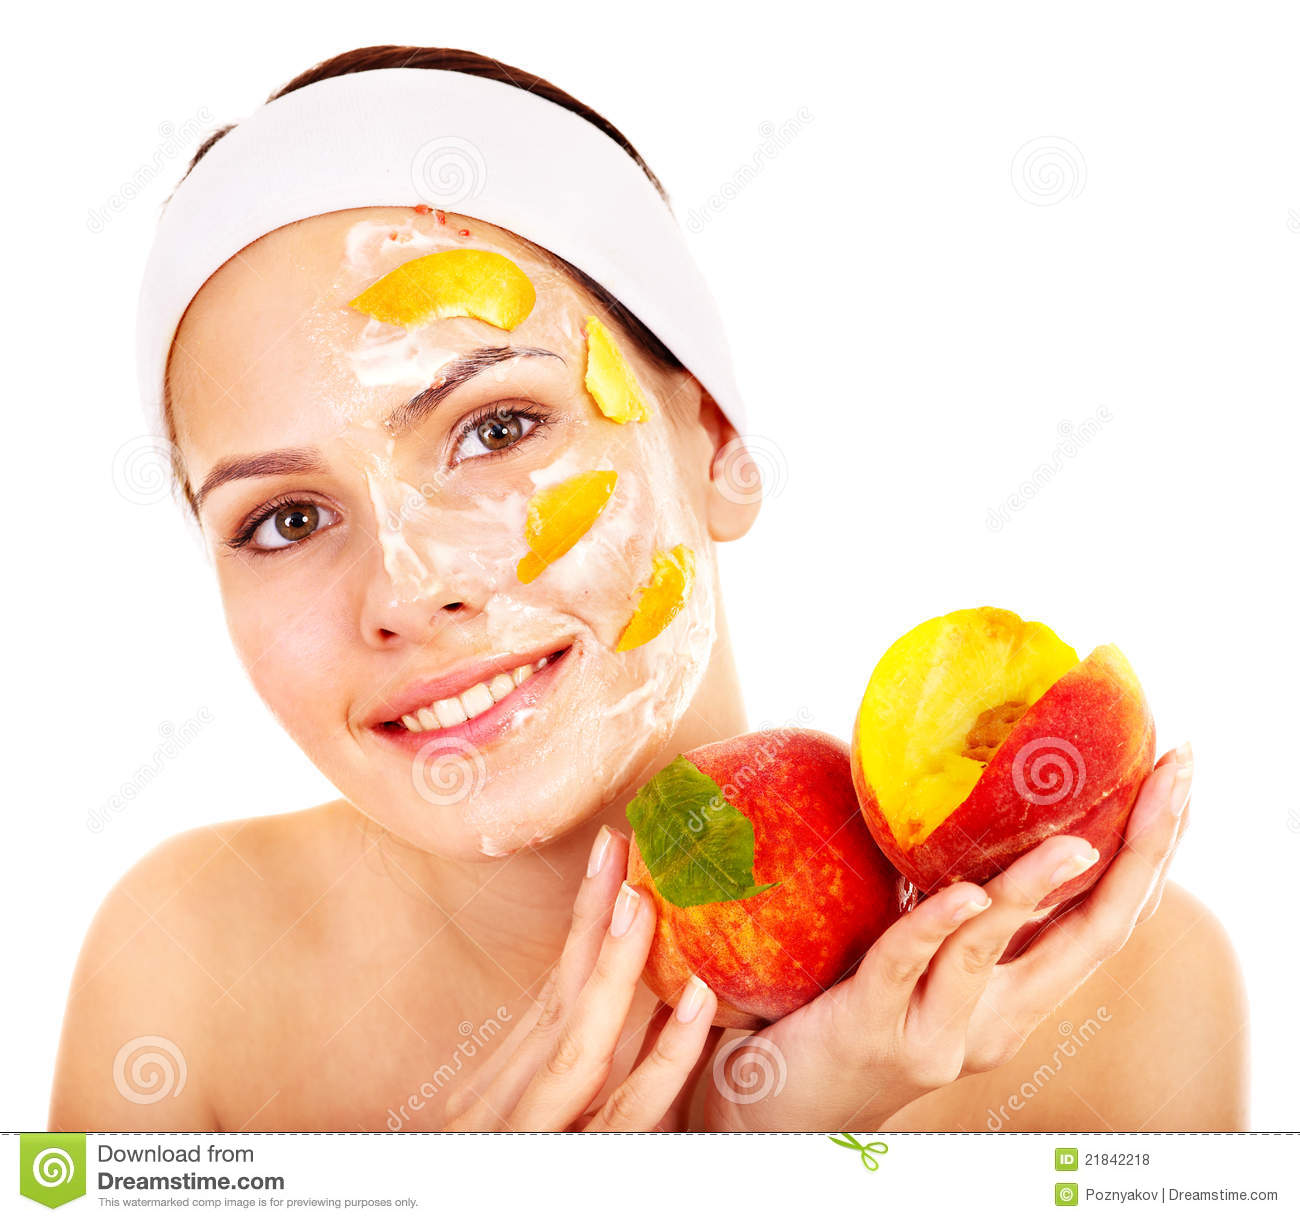 Facial fruit mask excellent